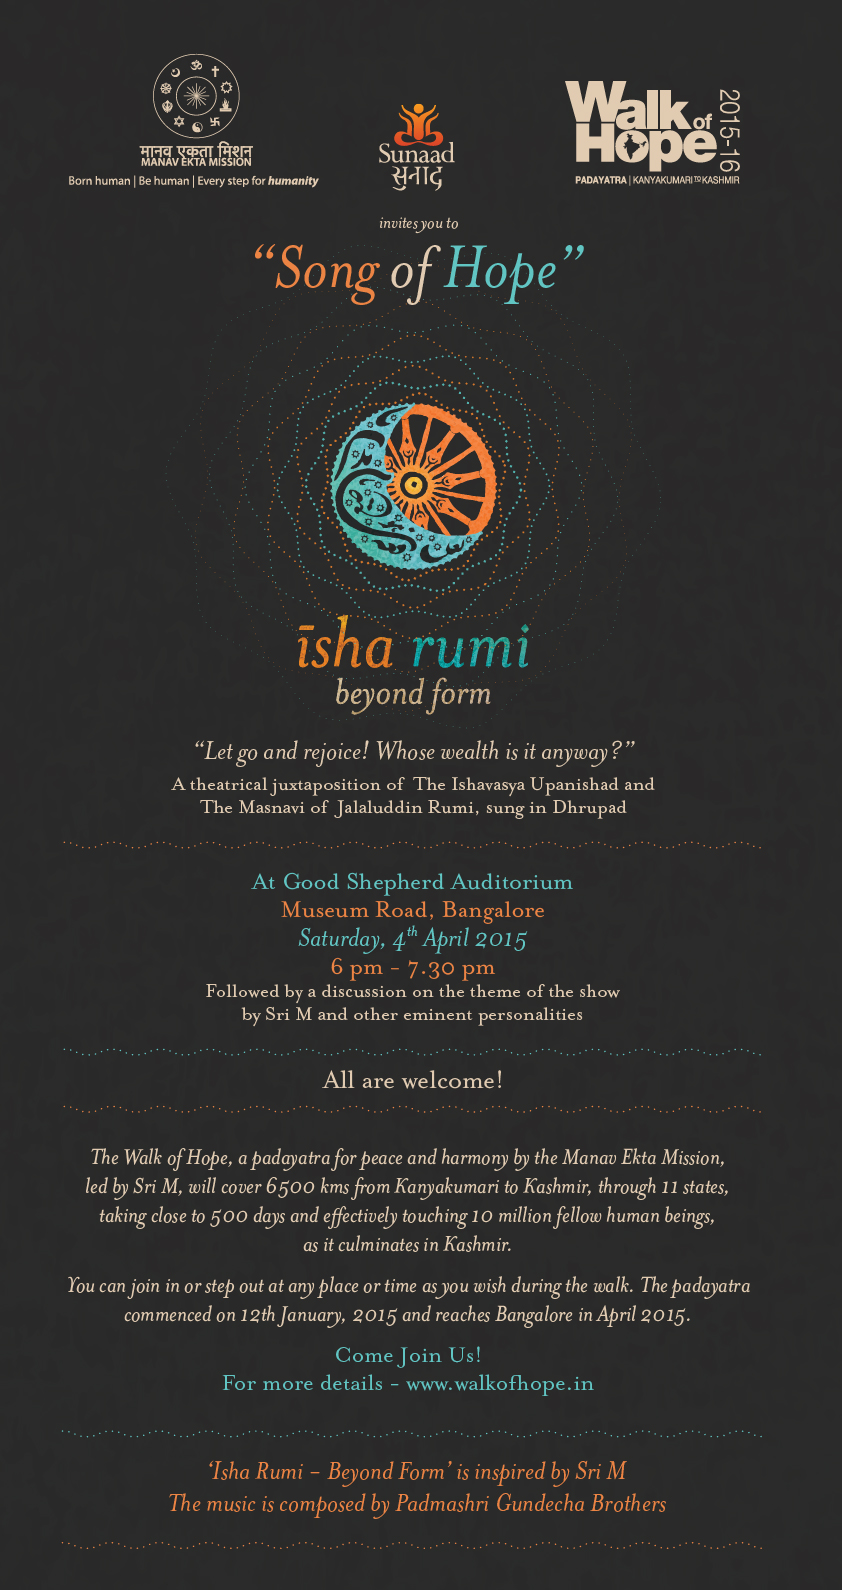 Song of Hope: Isha Rumi, Beyond Form